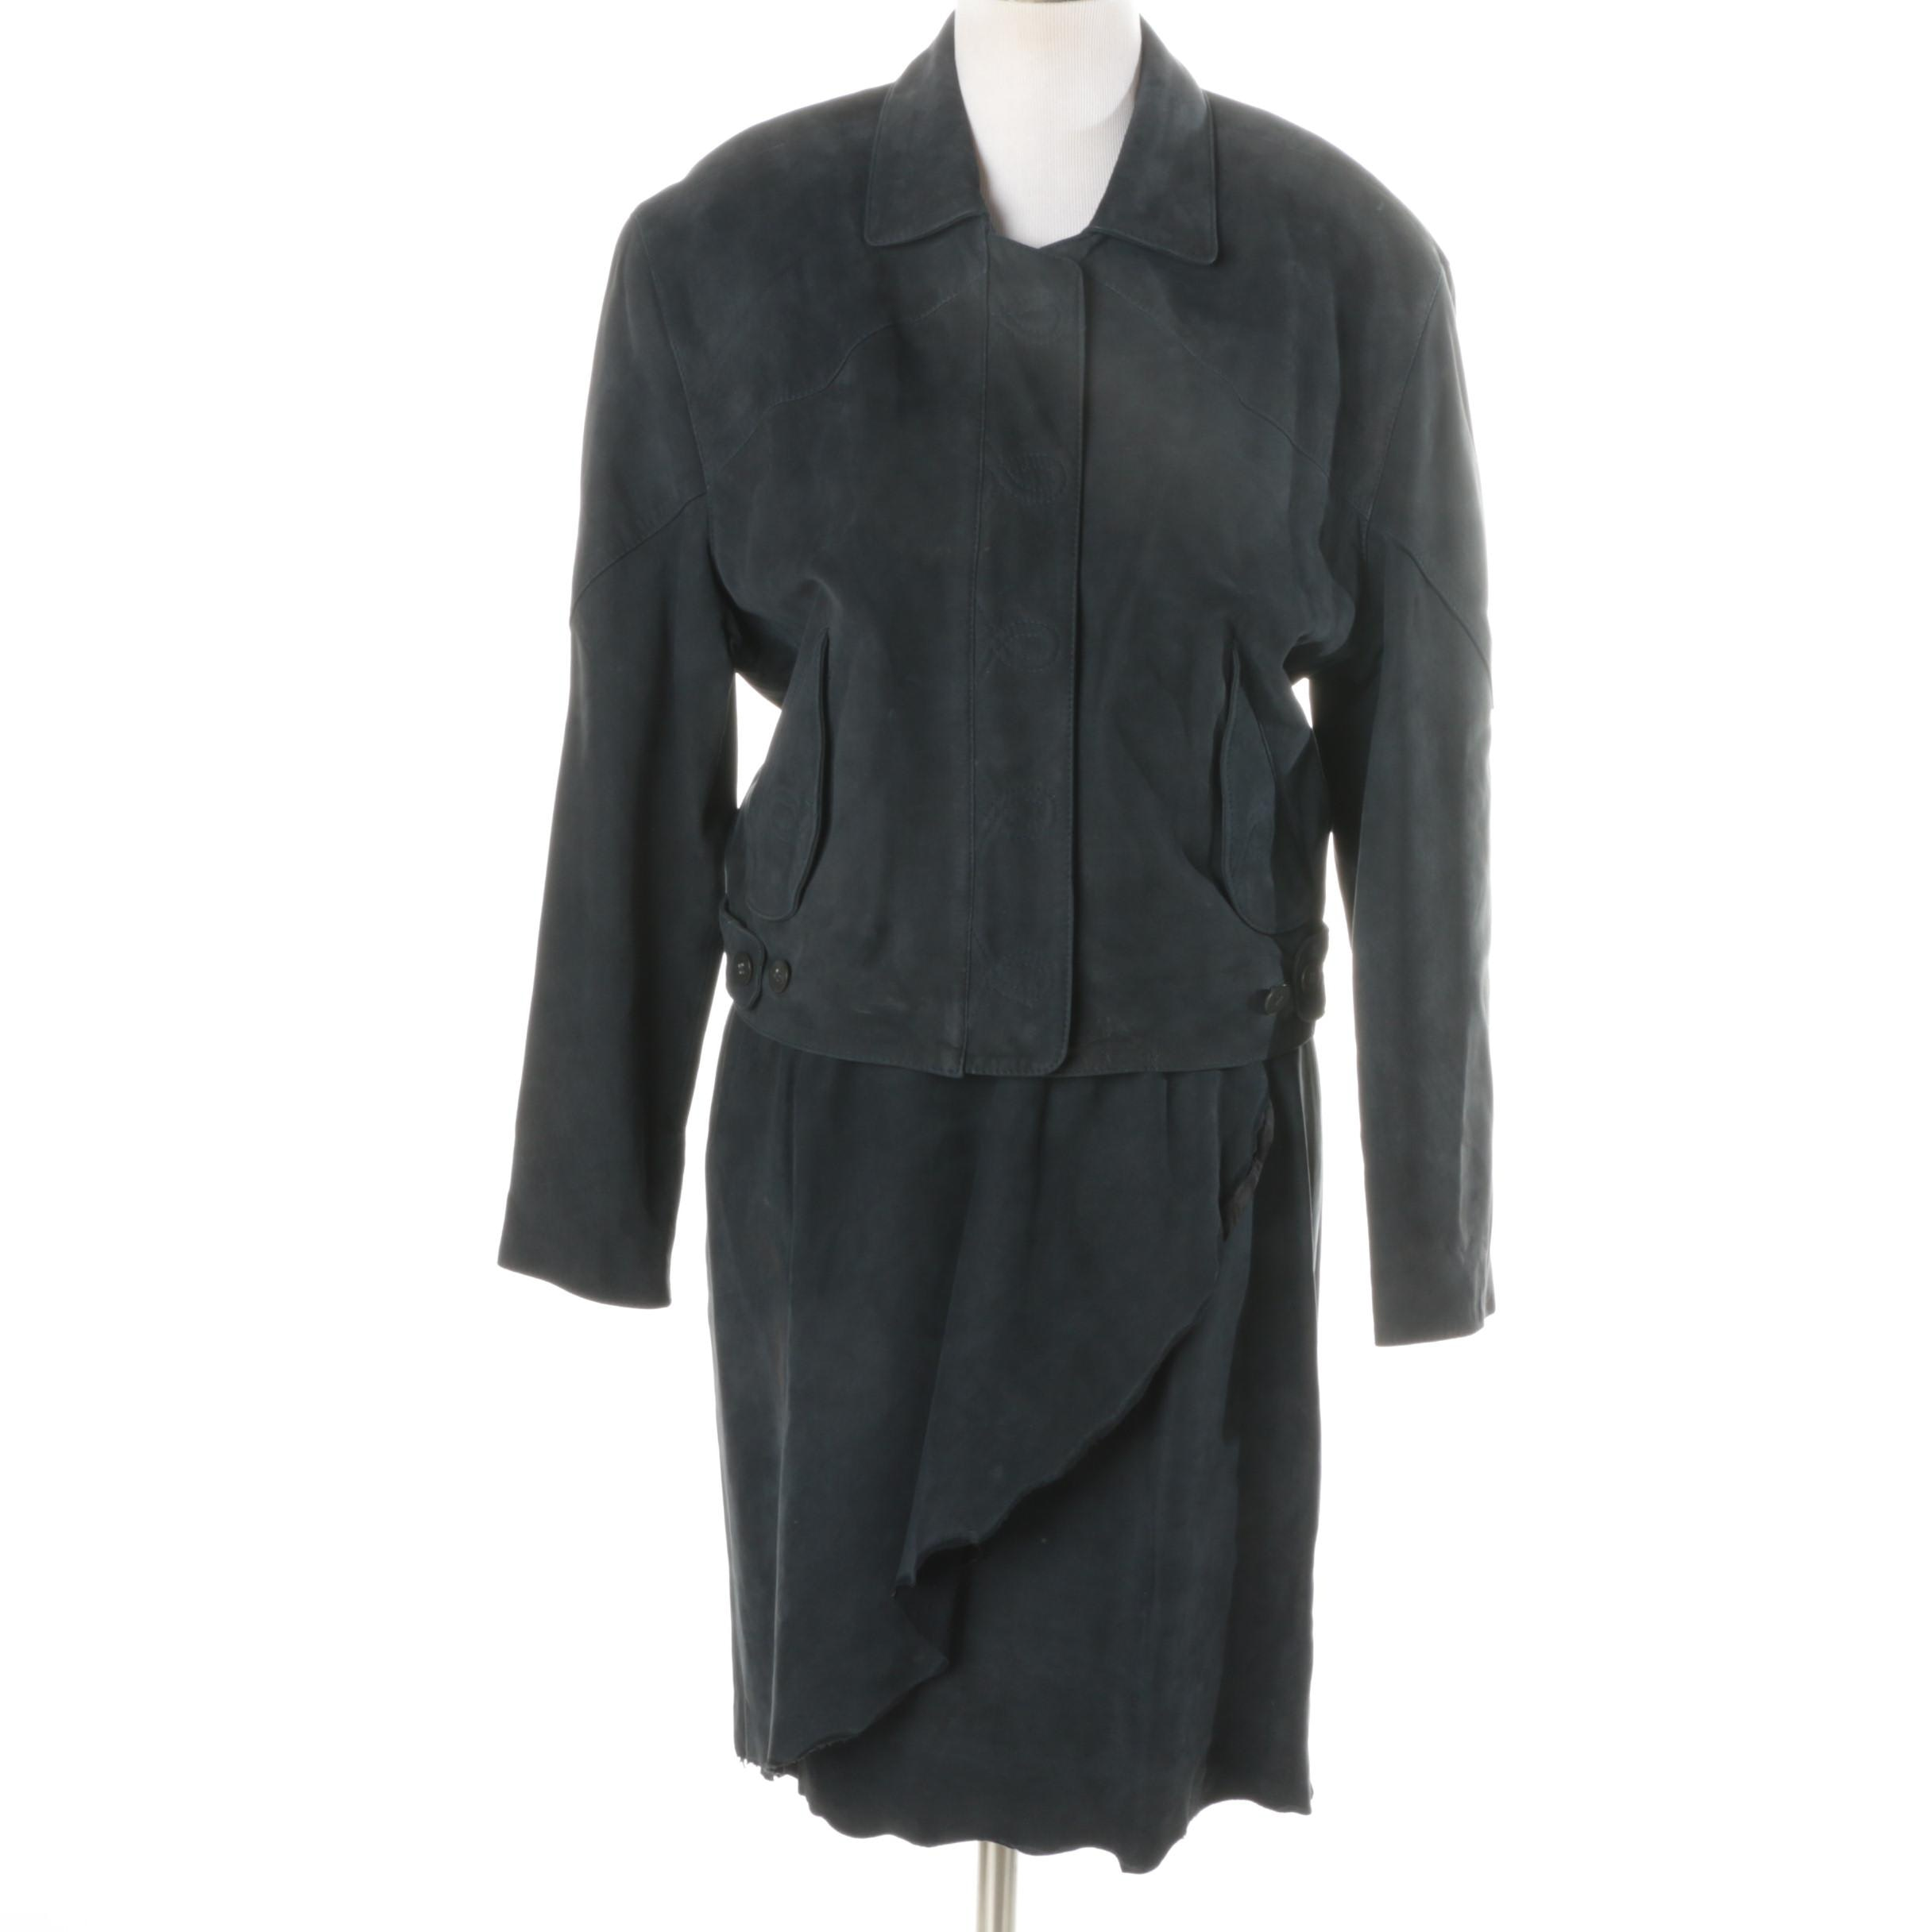 Robert Comstock Suede Skirt Suit